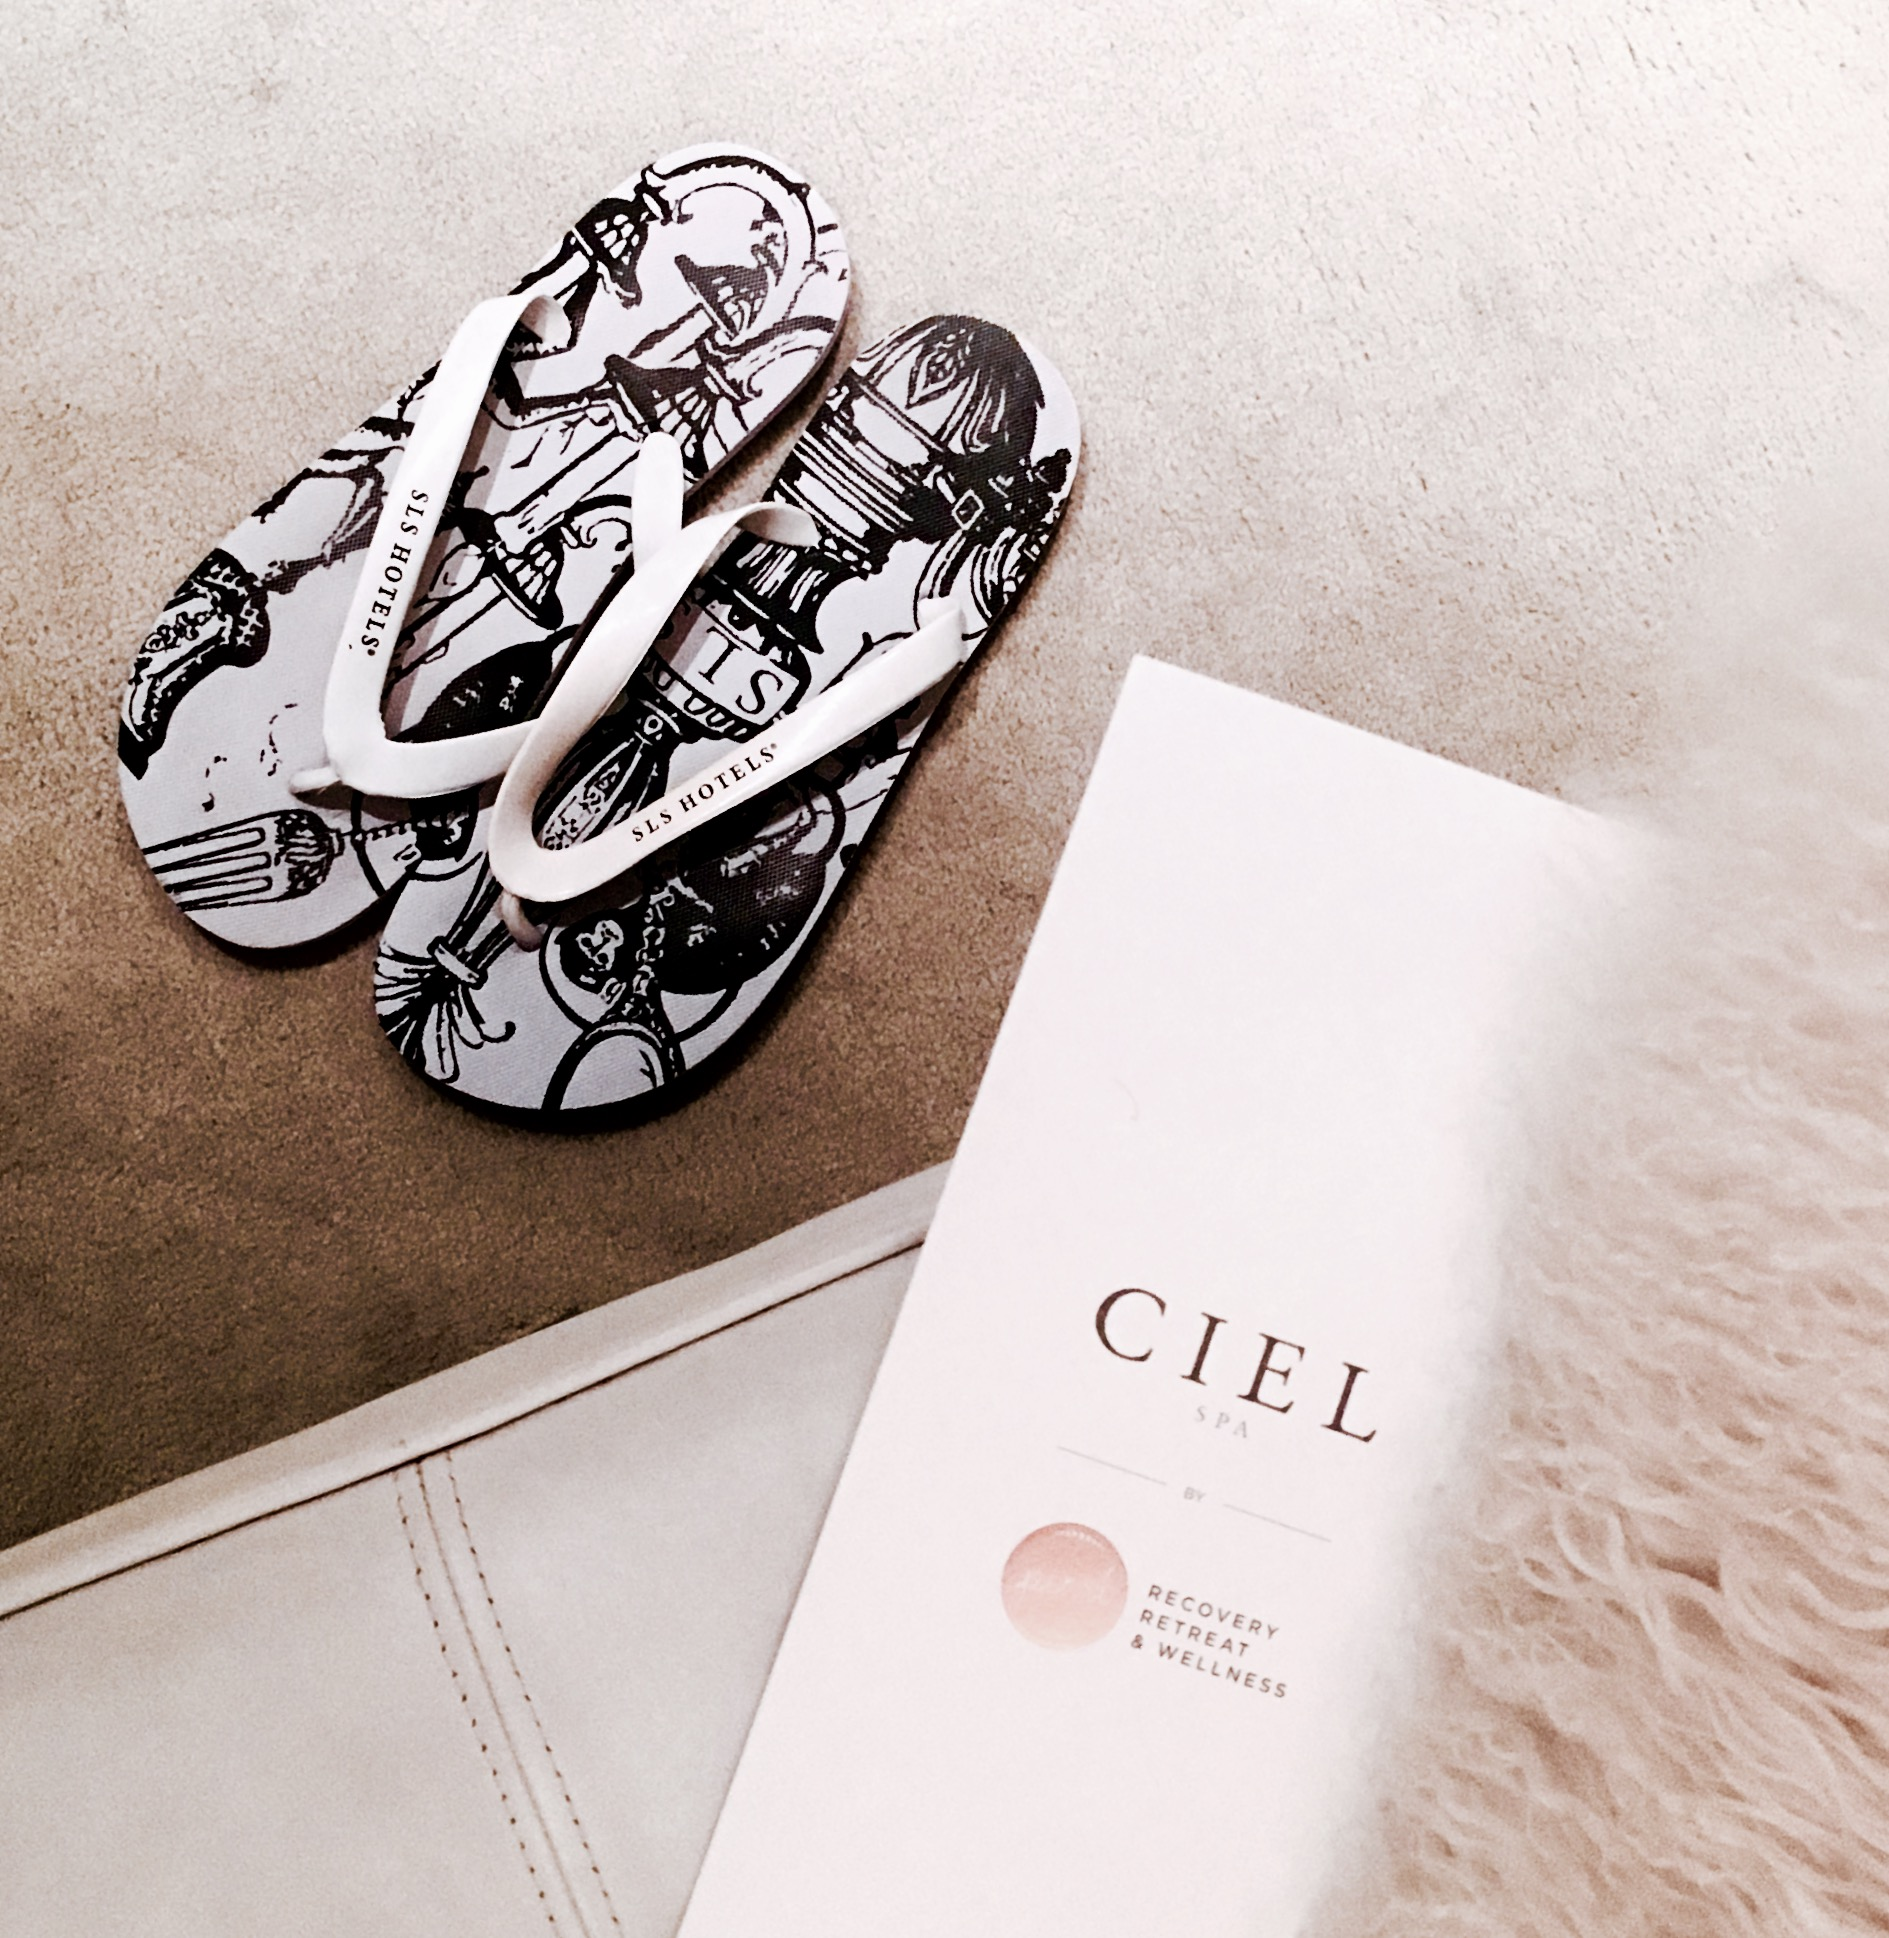 ciel-spa-review